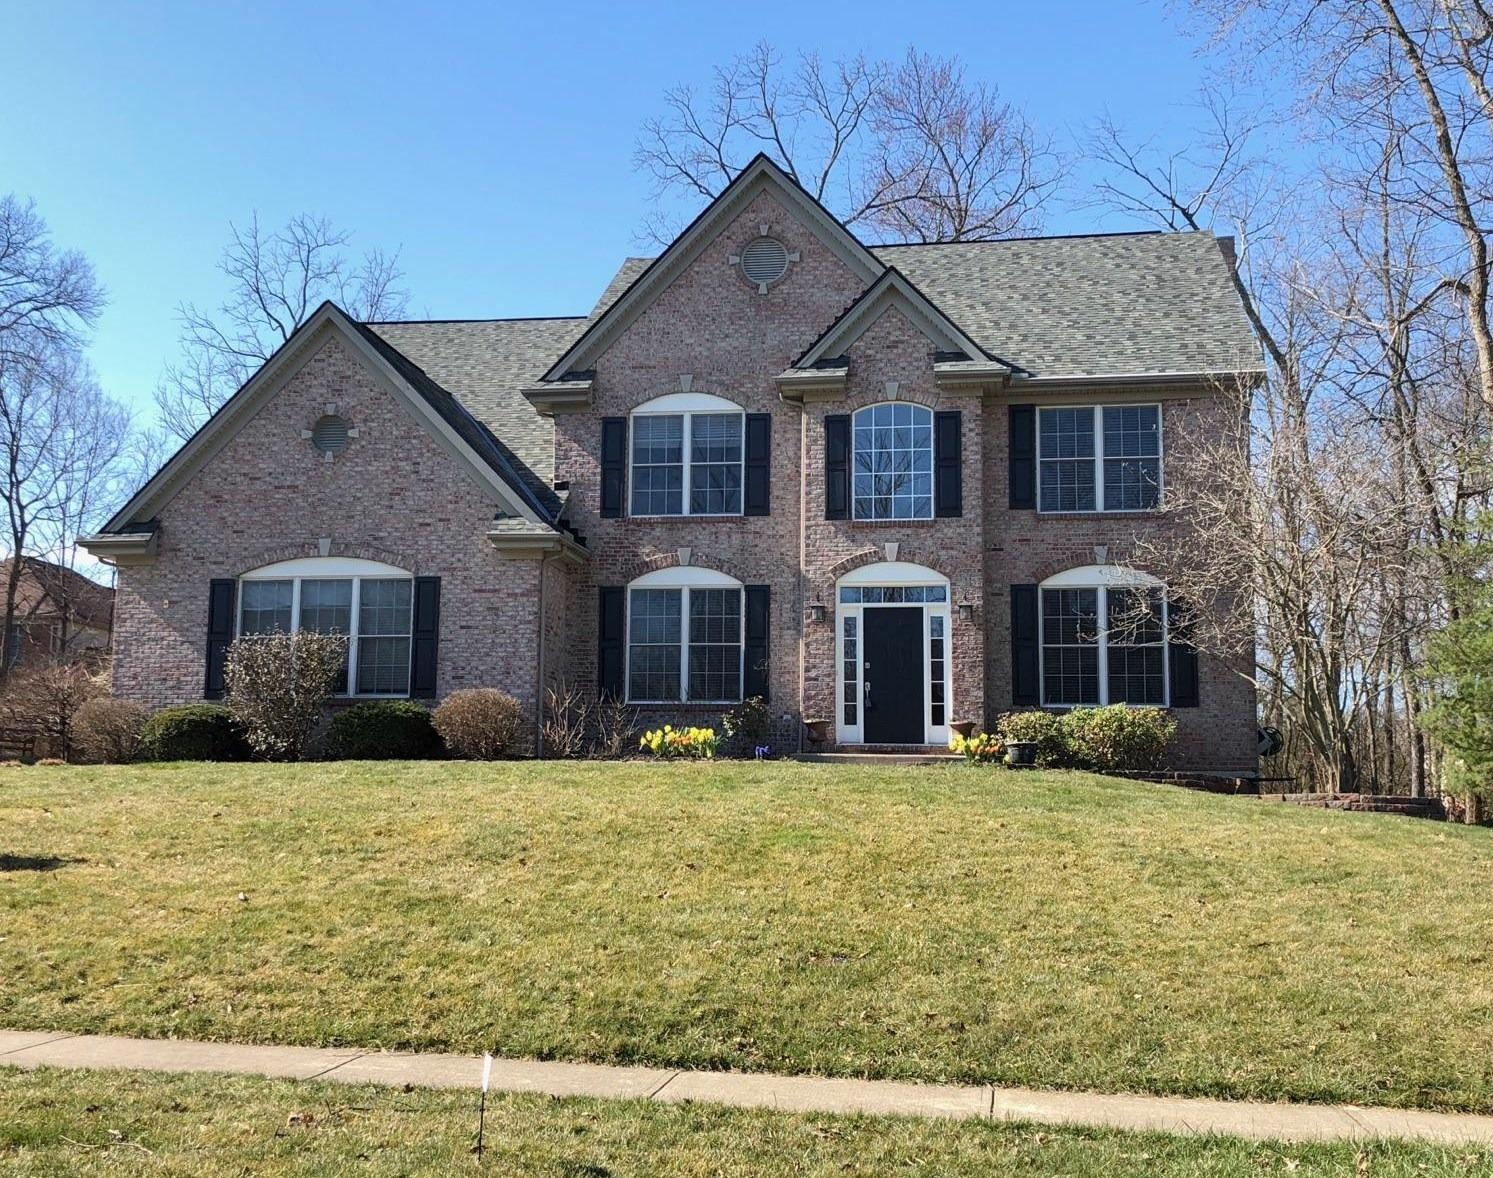 948 Palomar Dr Miami Twp. (East), OH